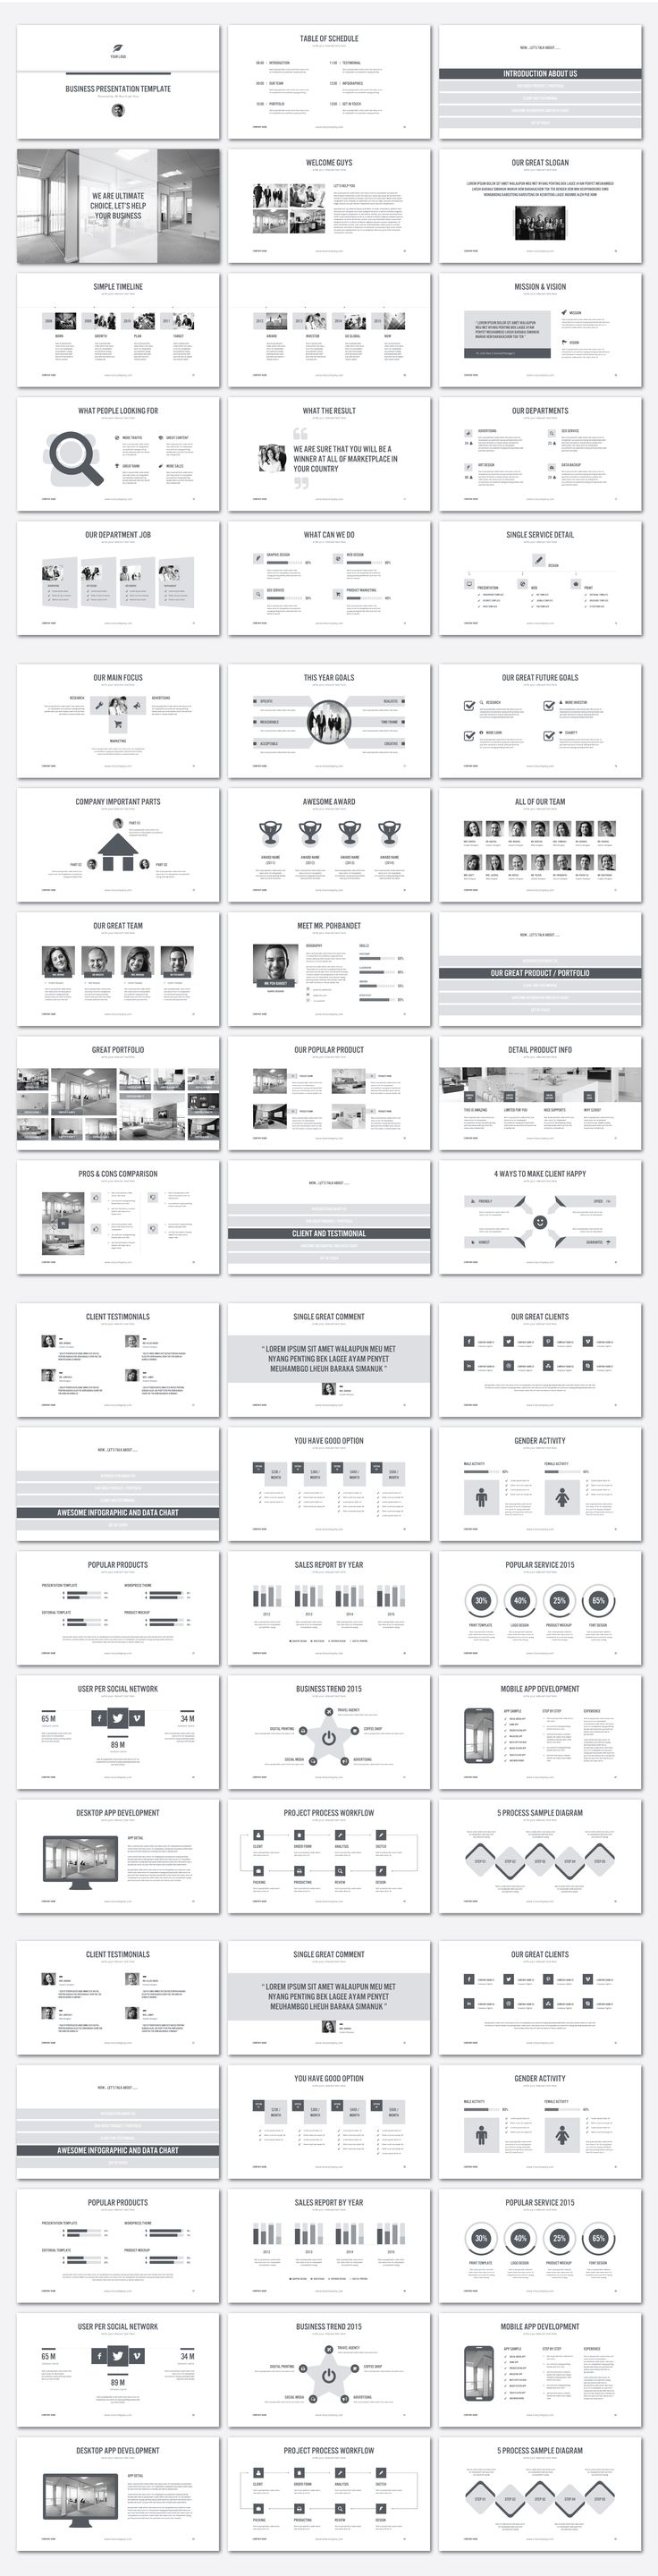 Best Presentation Design Inspiration Images On Pinterest Page - Awesome replace powerpoint template concept